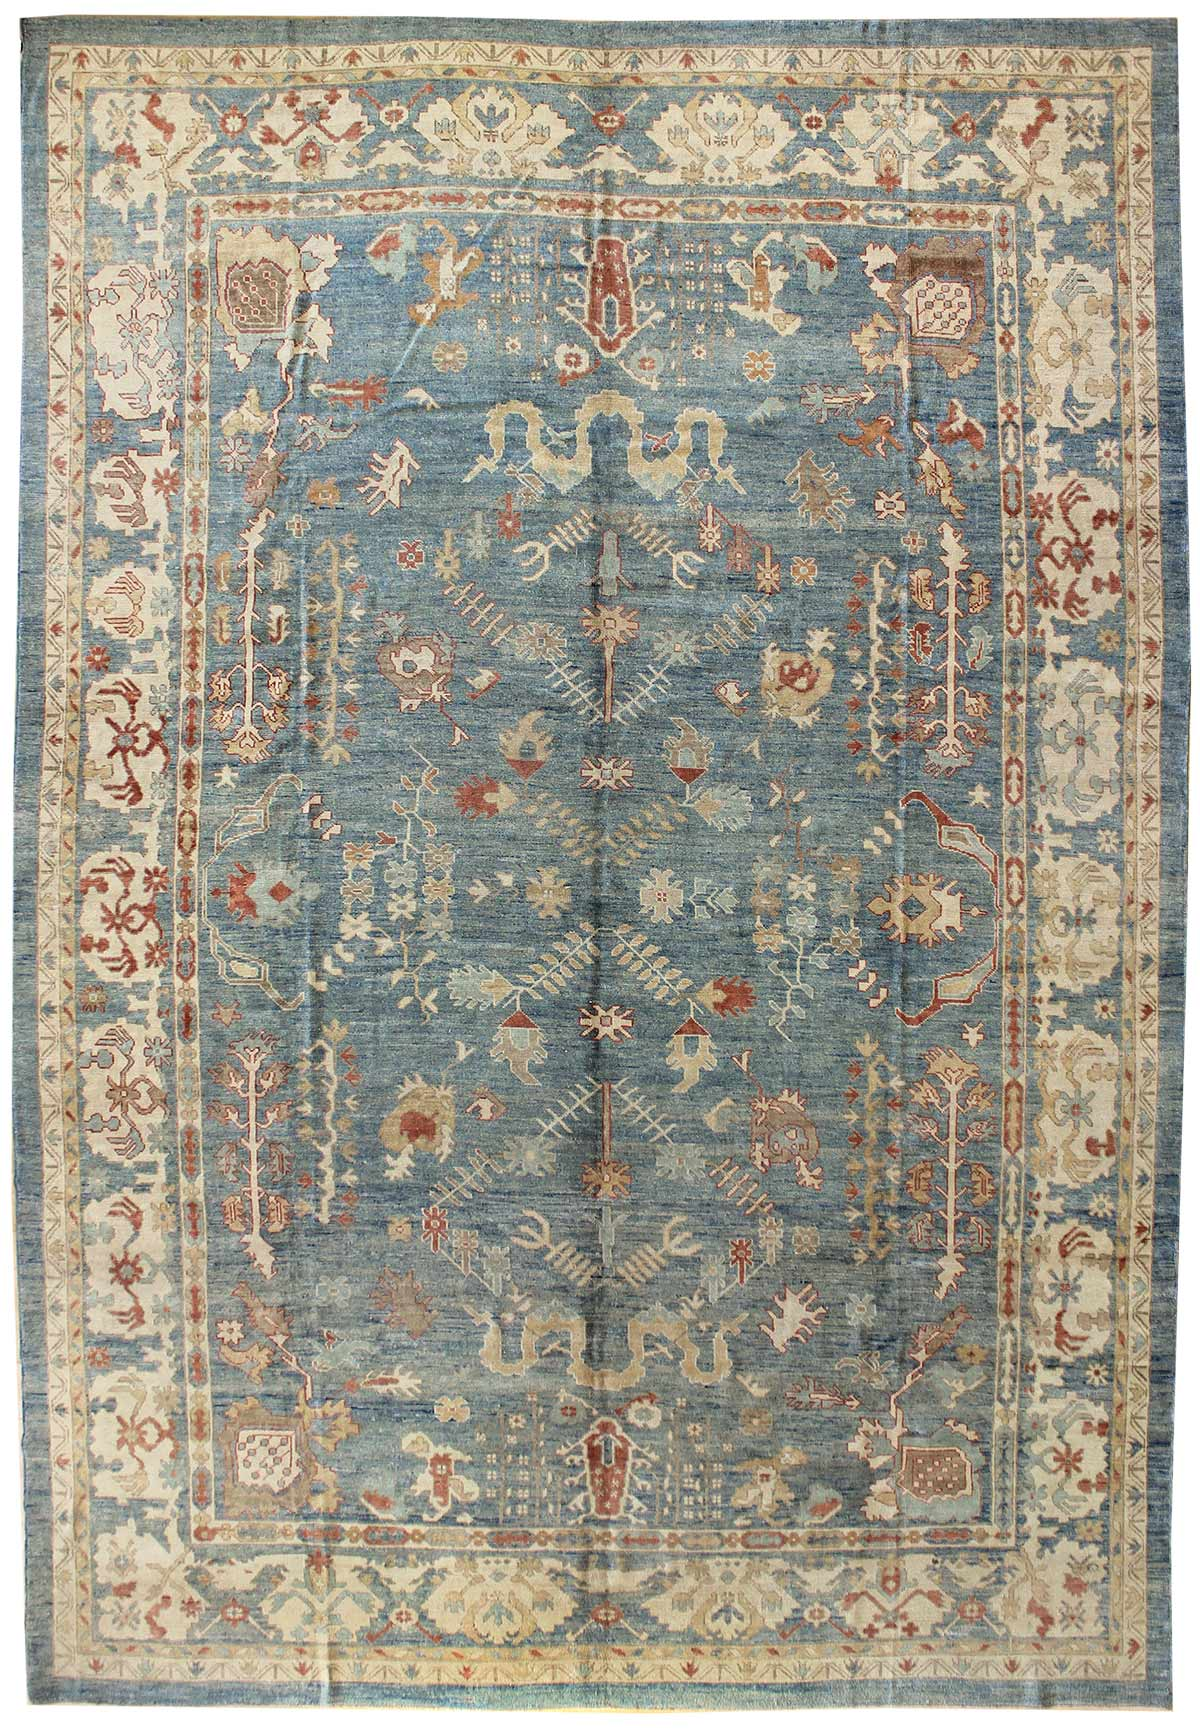 Exciting oushak rugs for floorings and rugs ideas with antique oushak rugs